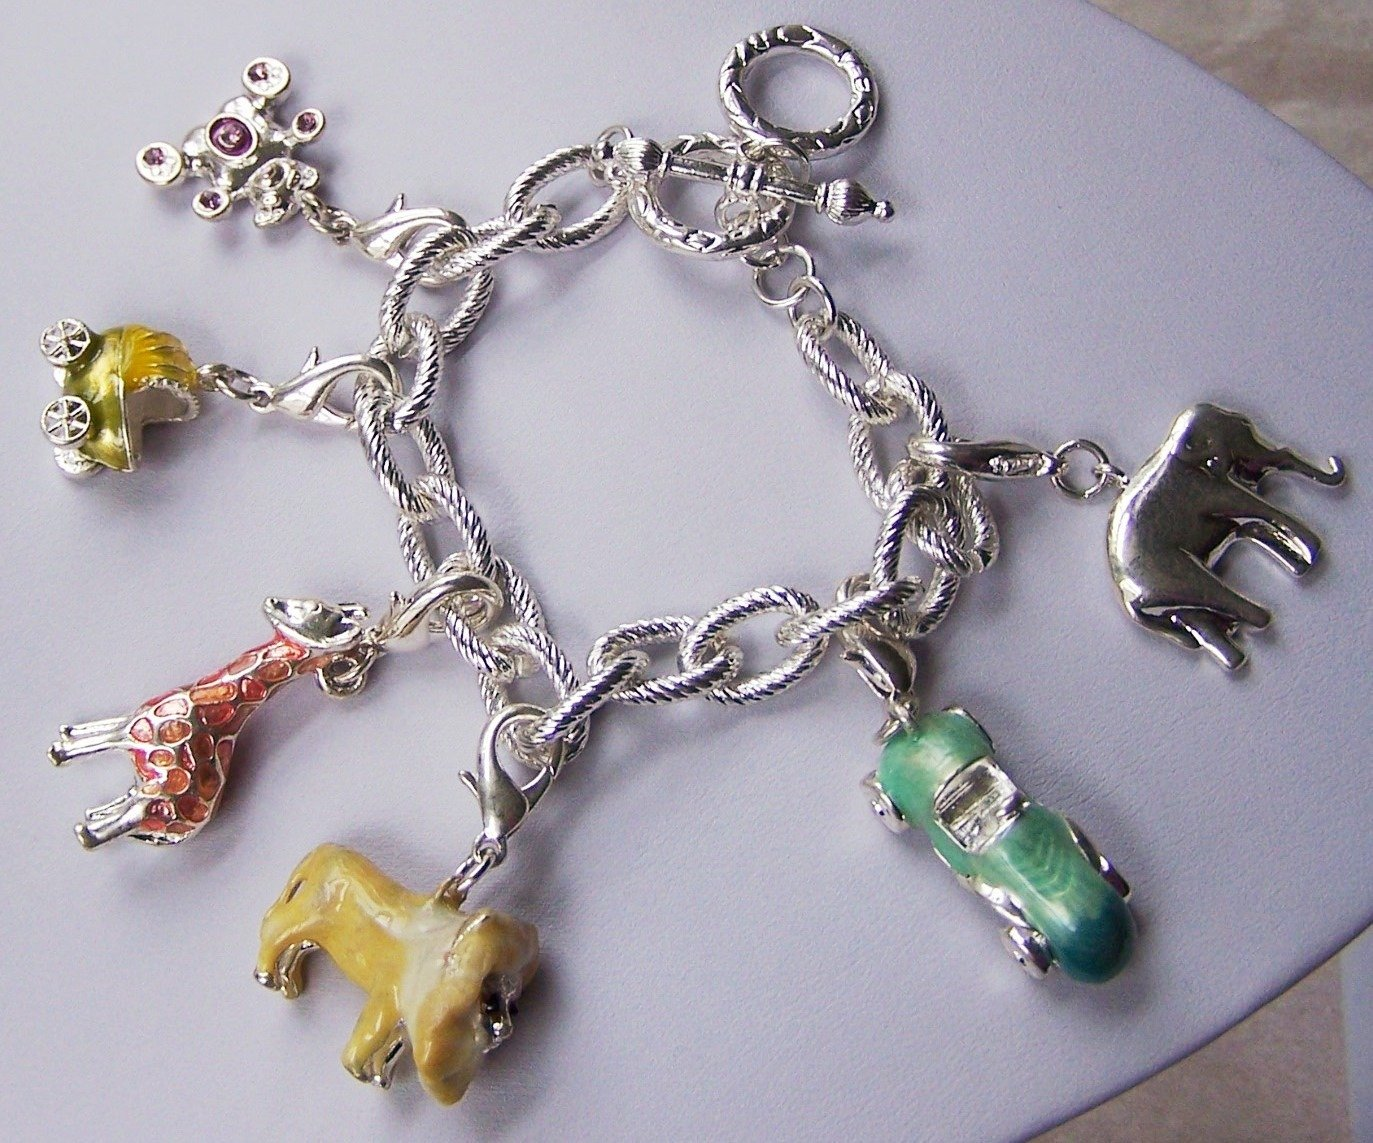 Baby Shower Giraffe Zoo Carriage Elephant Teddy Bear Charm Bracelet